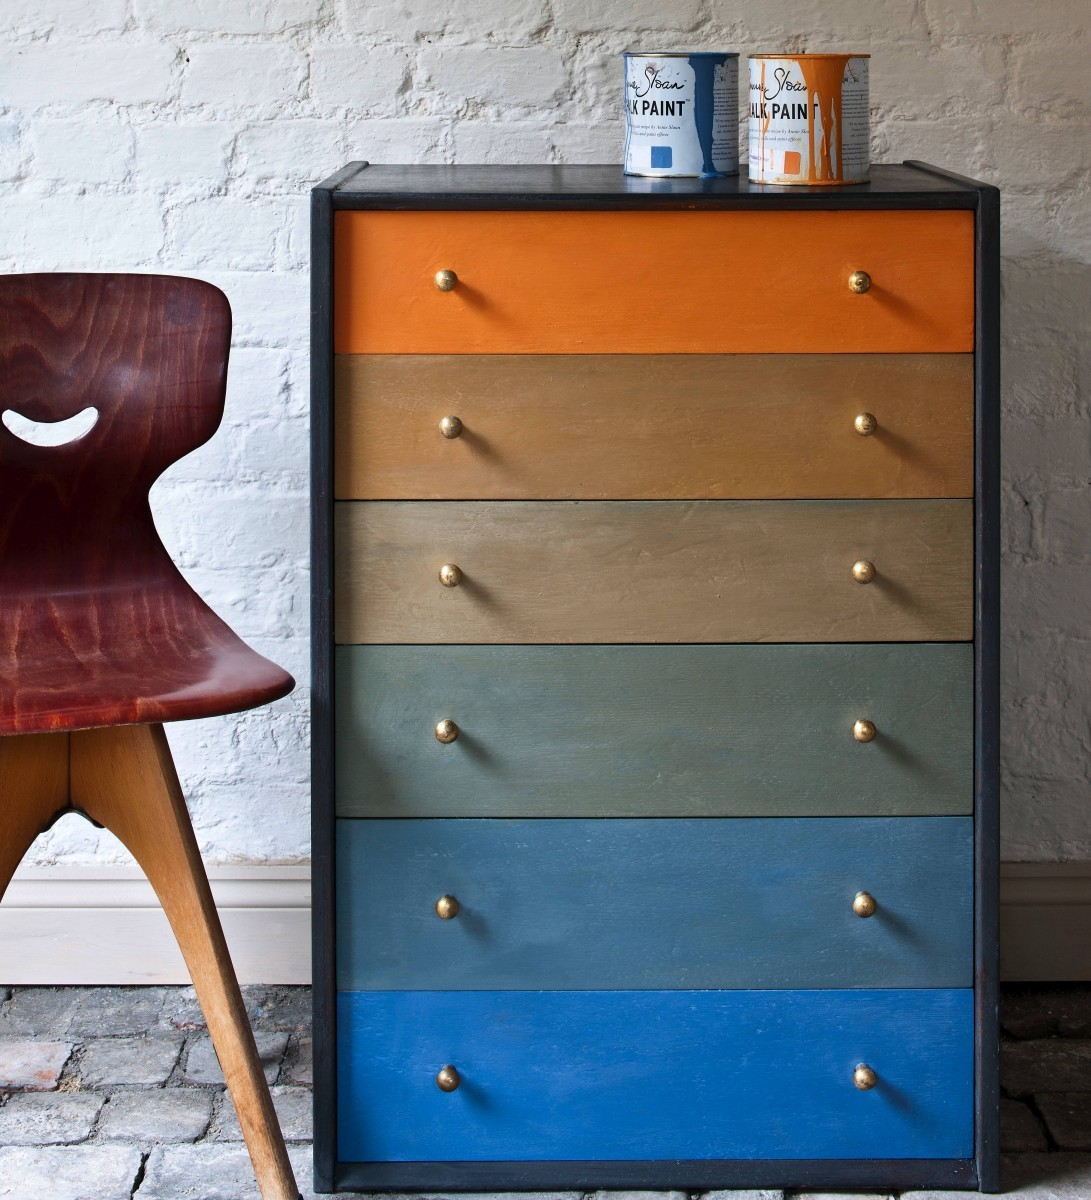 An upcycled chest of drawers painted in the style of Paul Klee